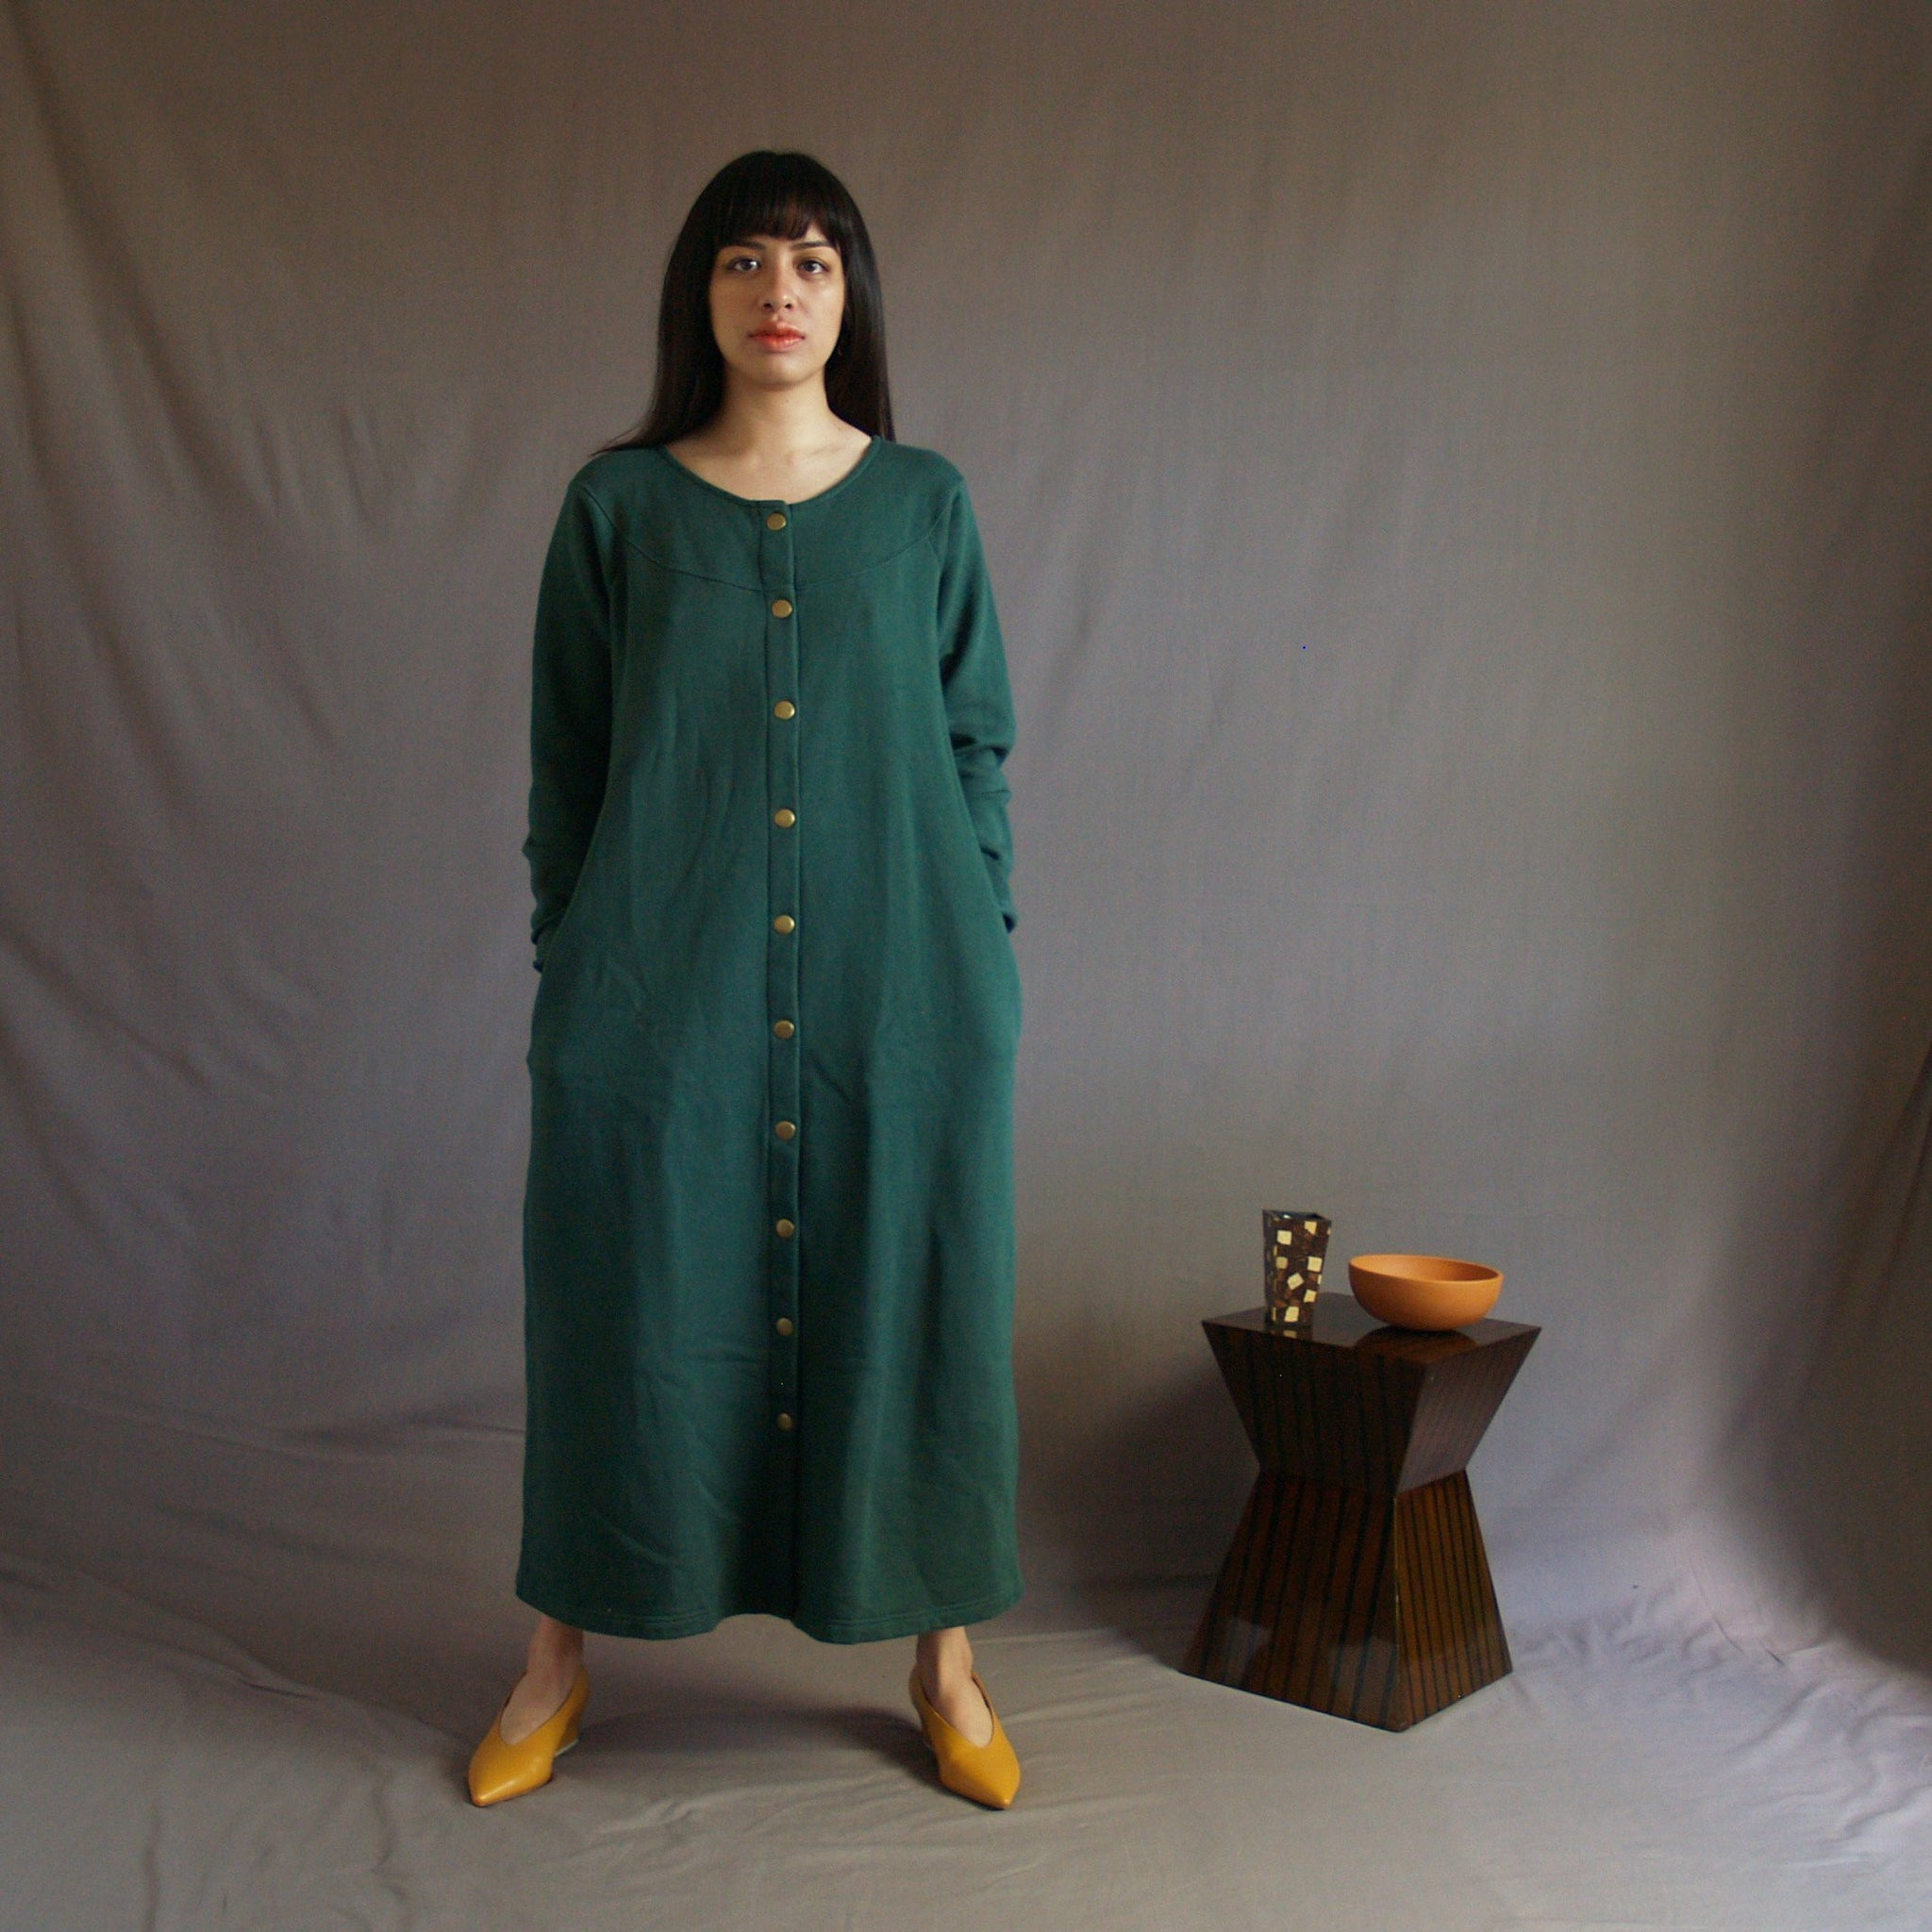 Fleece Dress